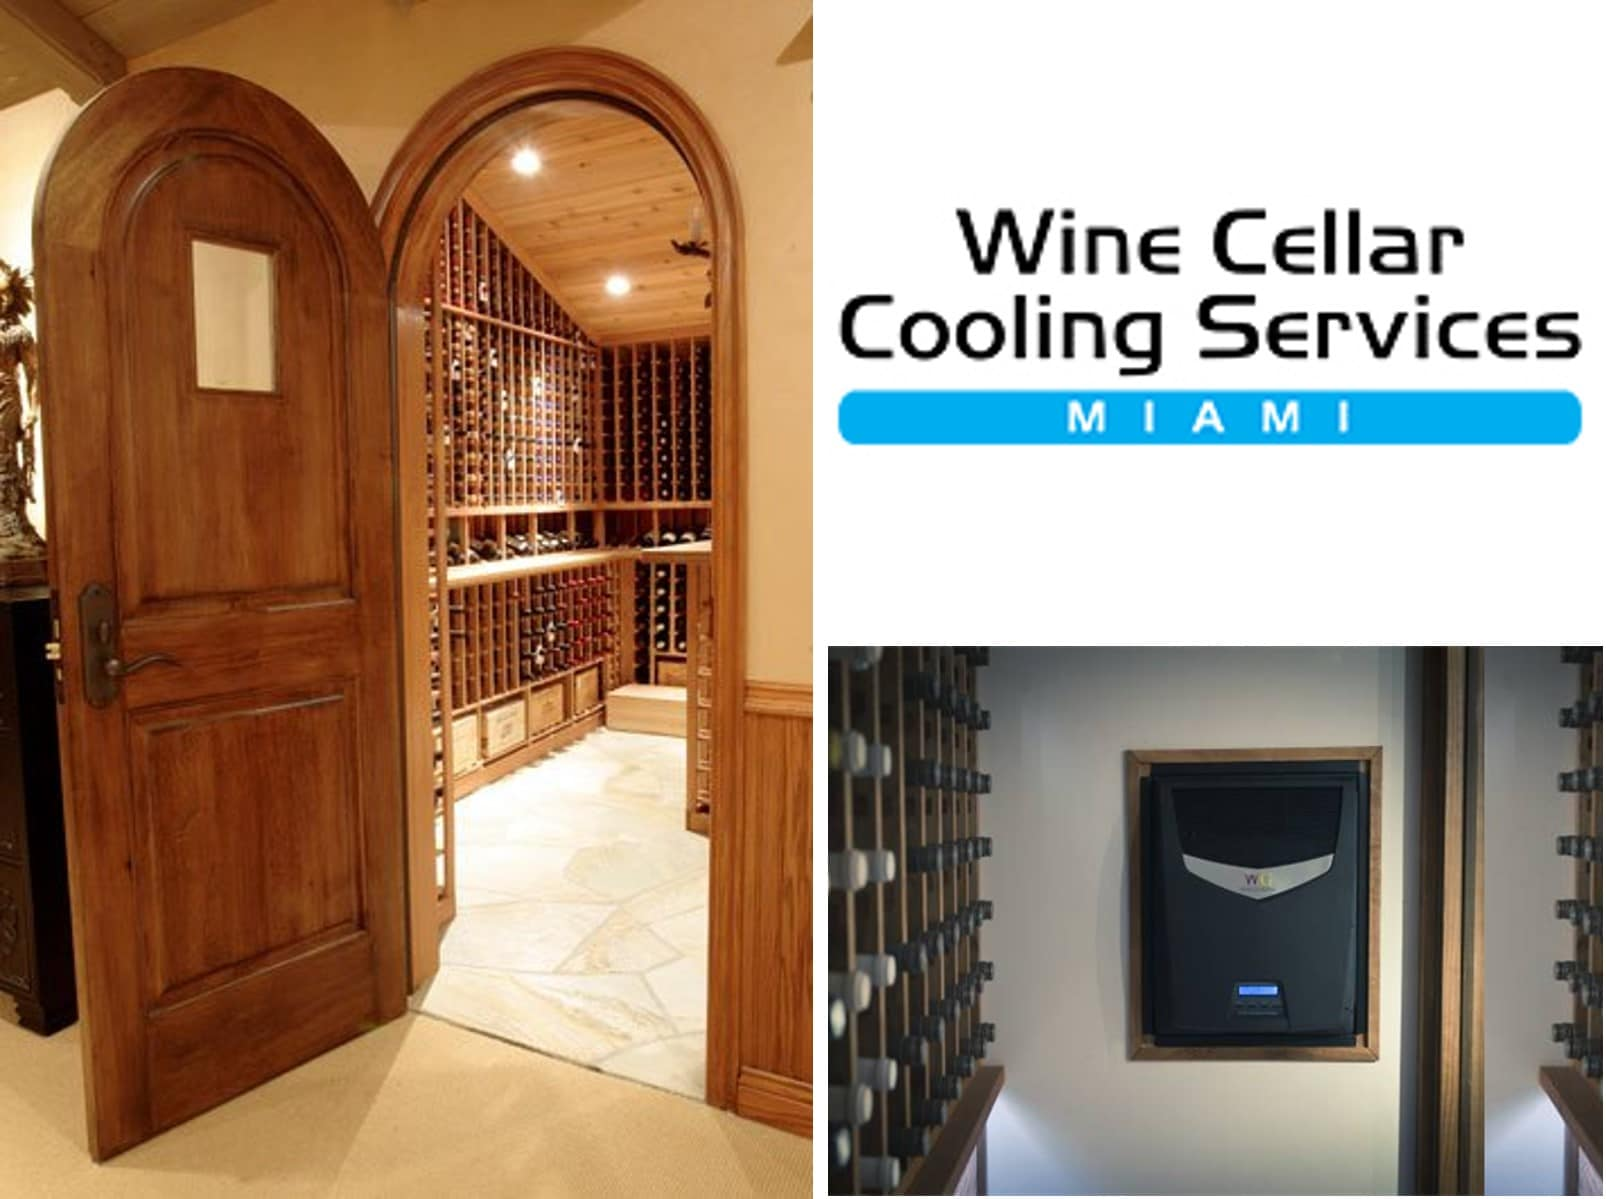 Residential Custom Wine Cellar Cooling Refrigeration Experts in Miami and Fort Lauderdale